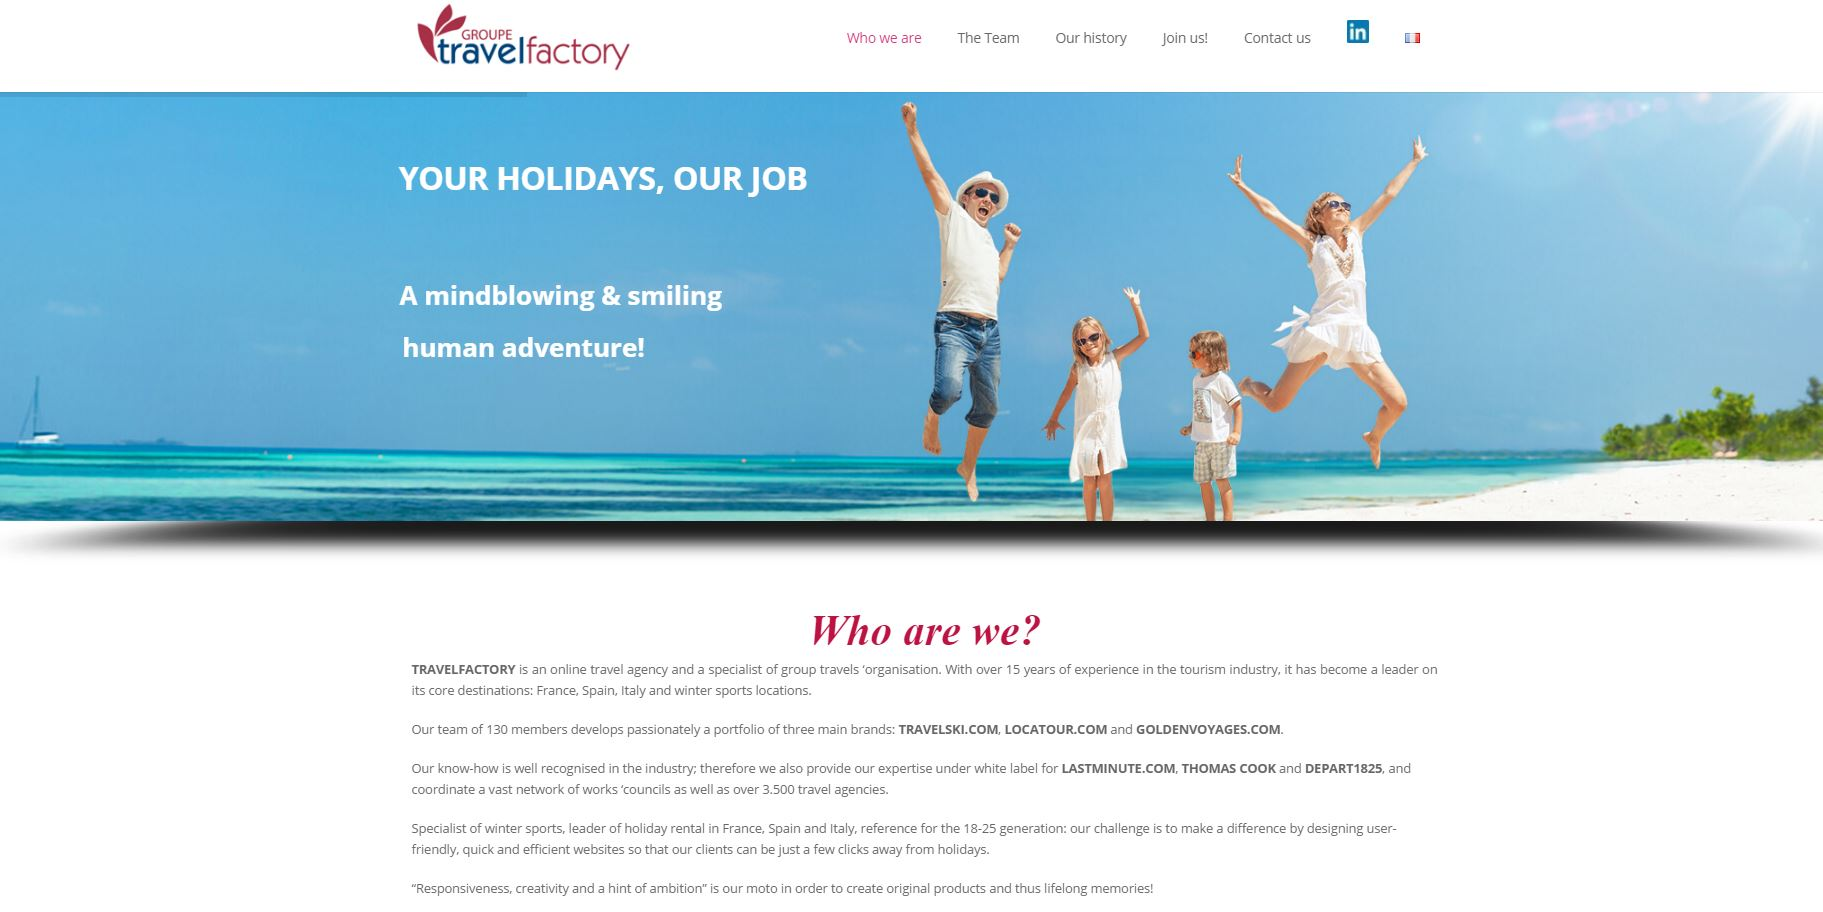 Travelfactory Website